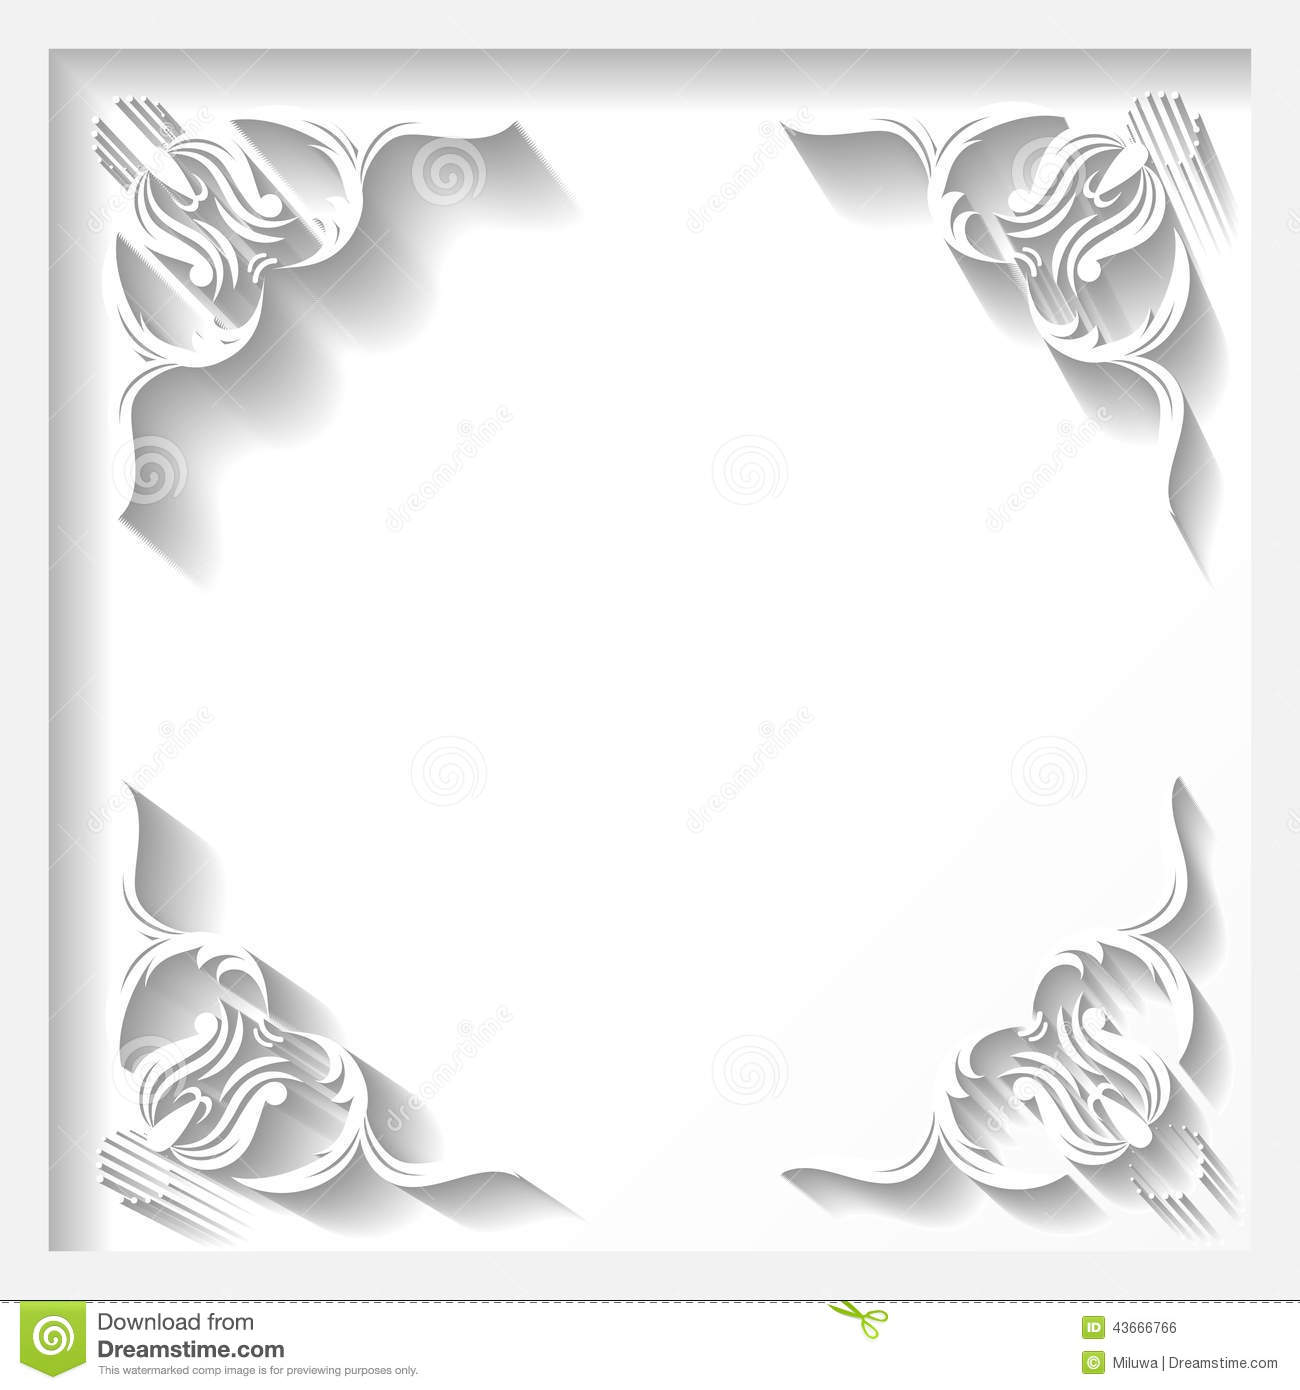 Paper Cut Invitation Wedding were Lovely Style To Create Cool Invitation Layout